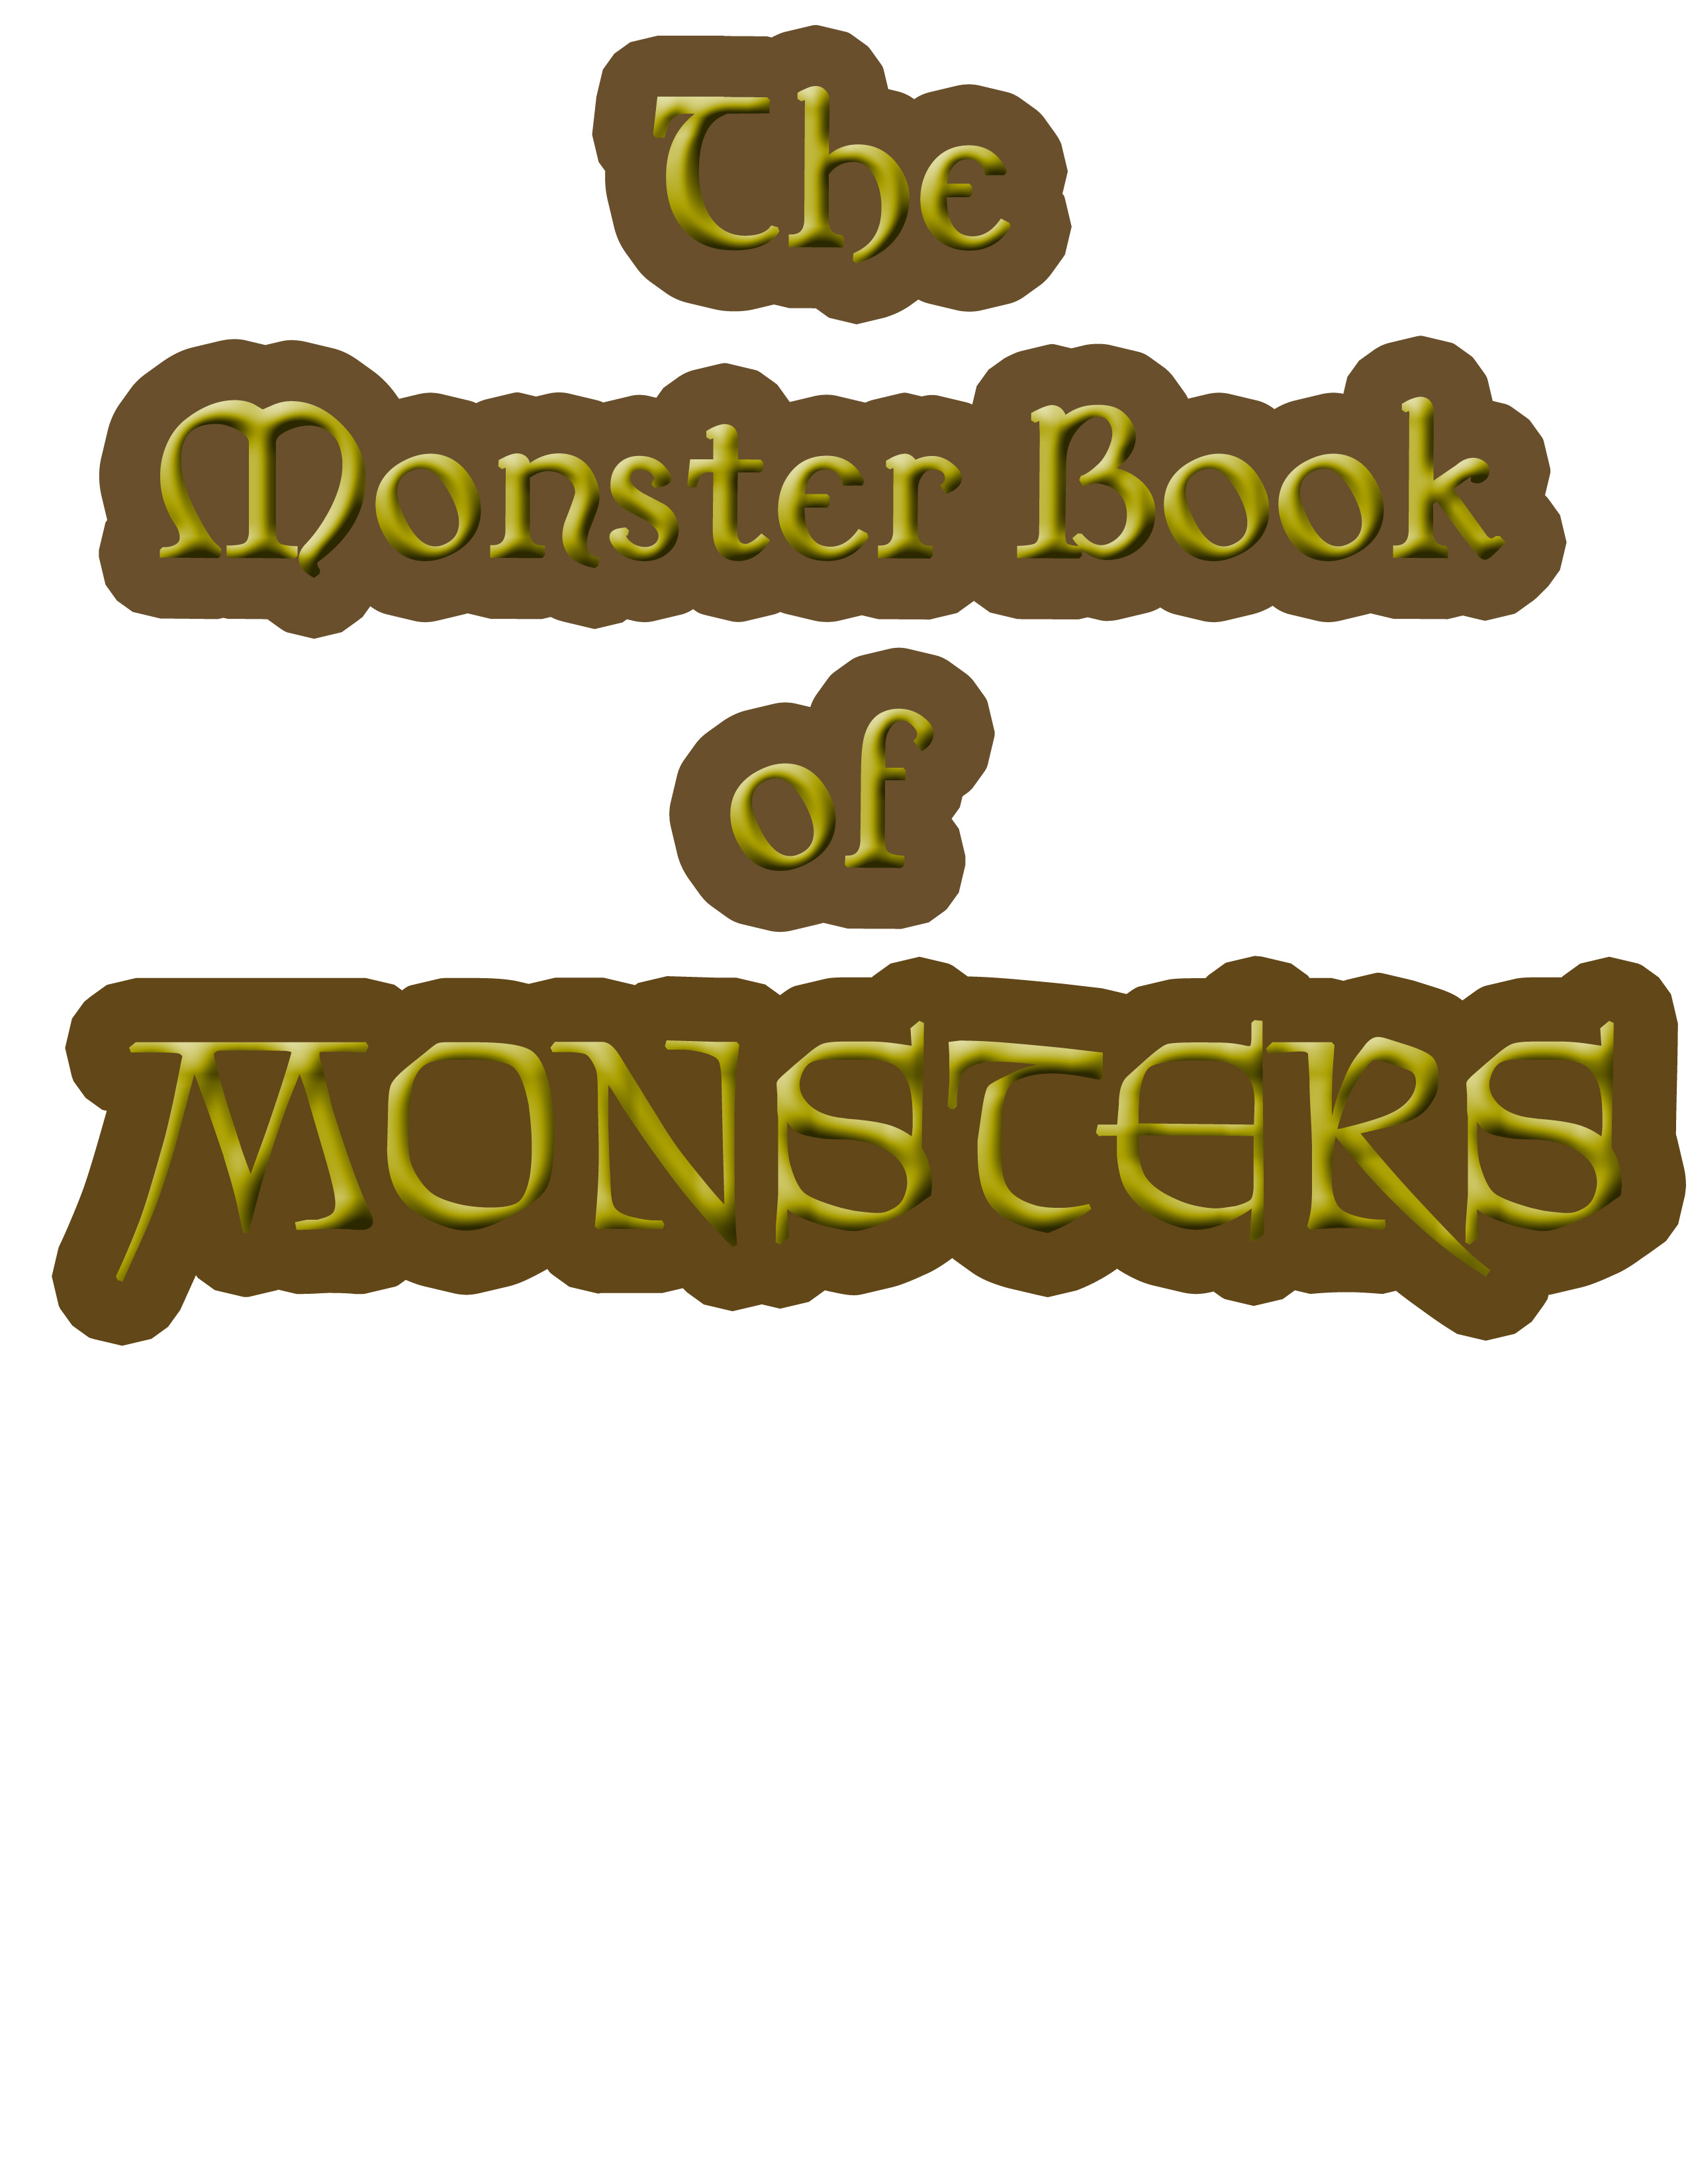 Making The Monster Book Of Monsters Samantha Kamilos